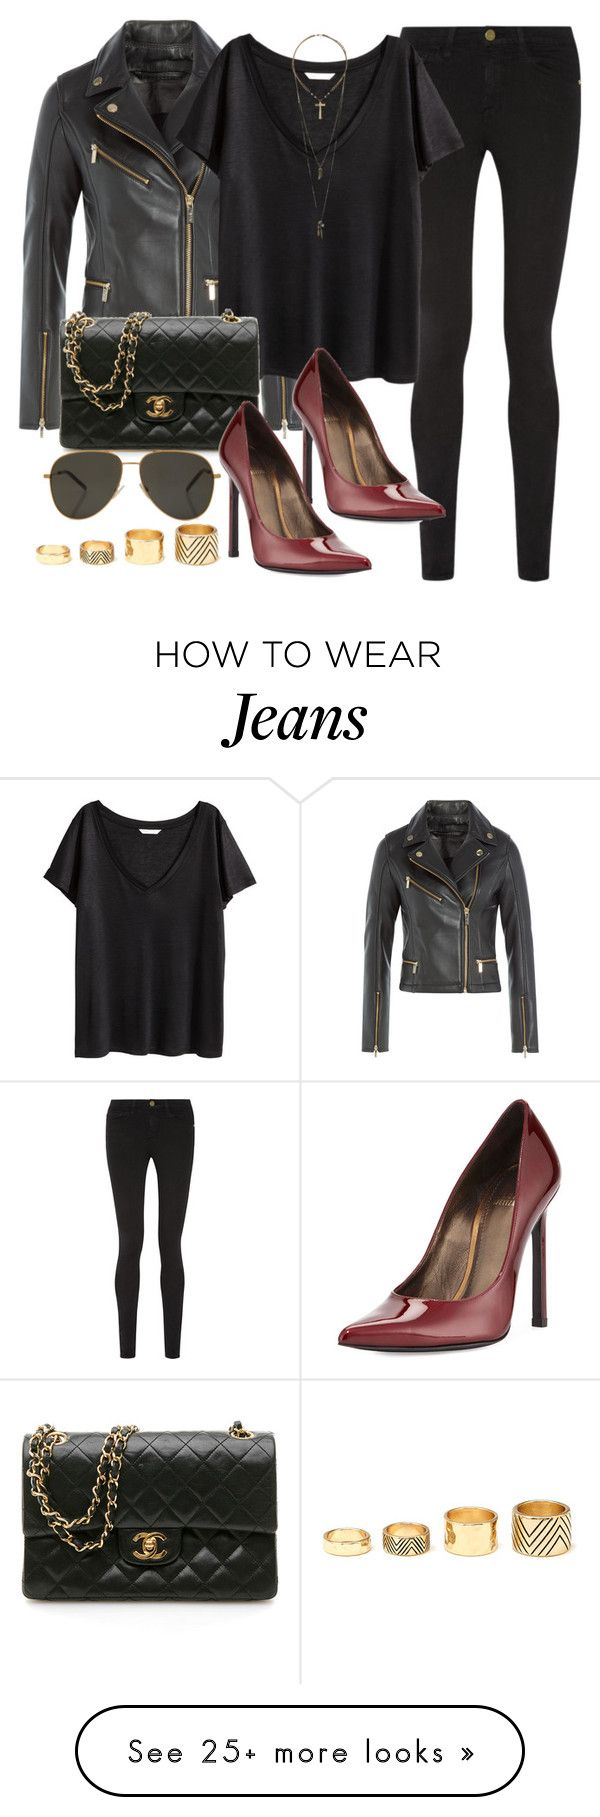 """""""Style #9448"""" by vany-alvarado on Polyvore featuring Karl Lagerfeld, Frame Denim, H&M, Stuart Weitzman, Chanel, Yves Saint Laurent, Relic and Forever 21"""